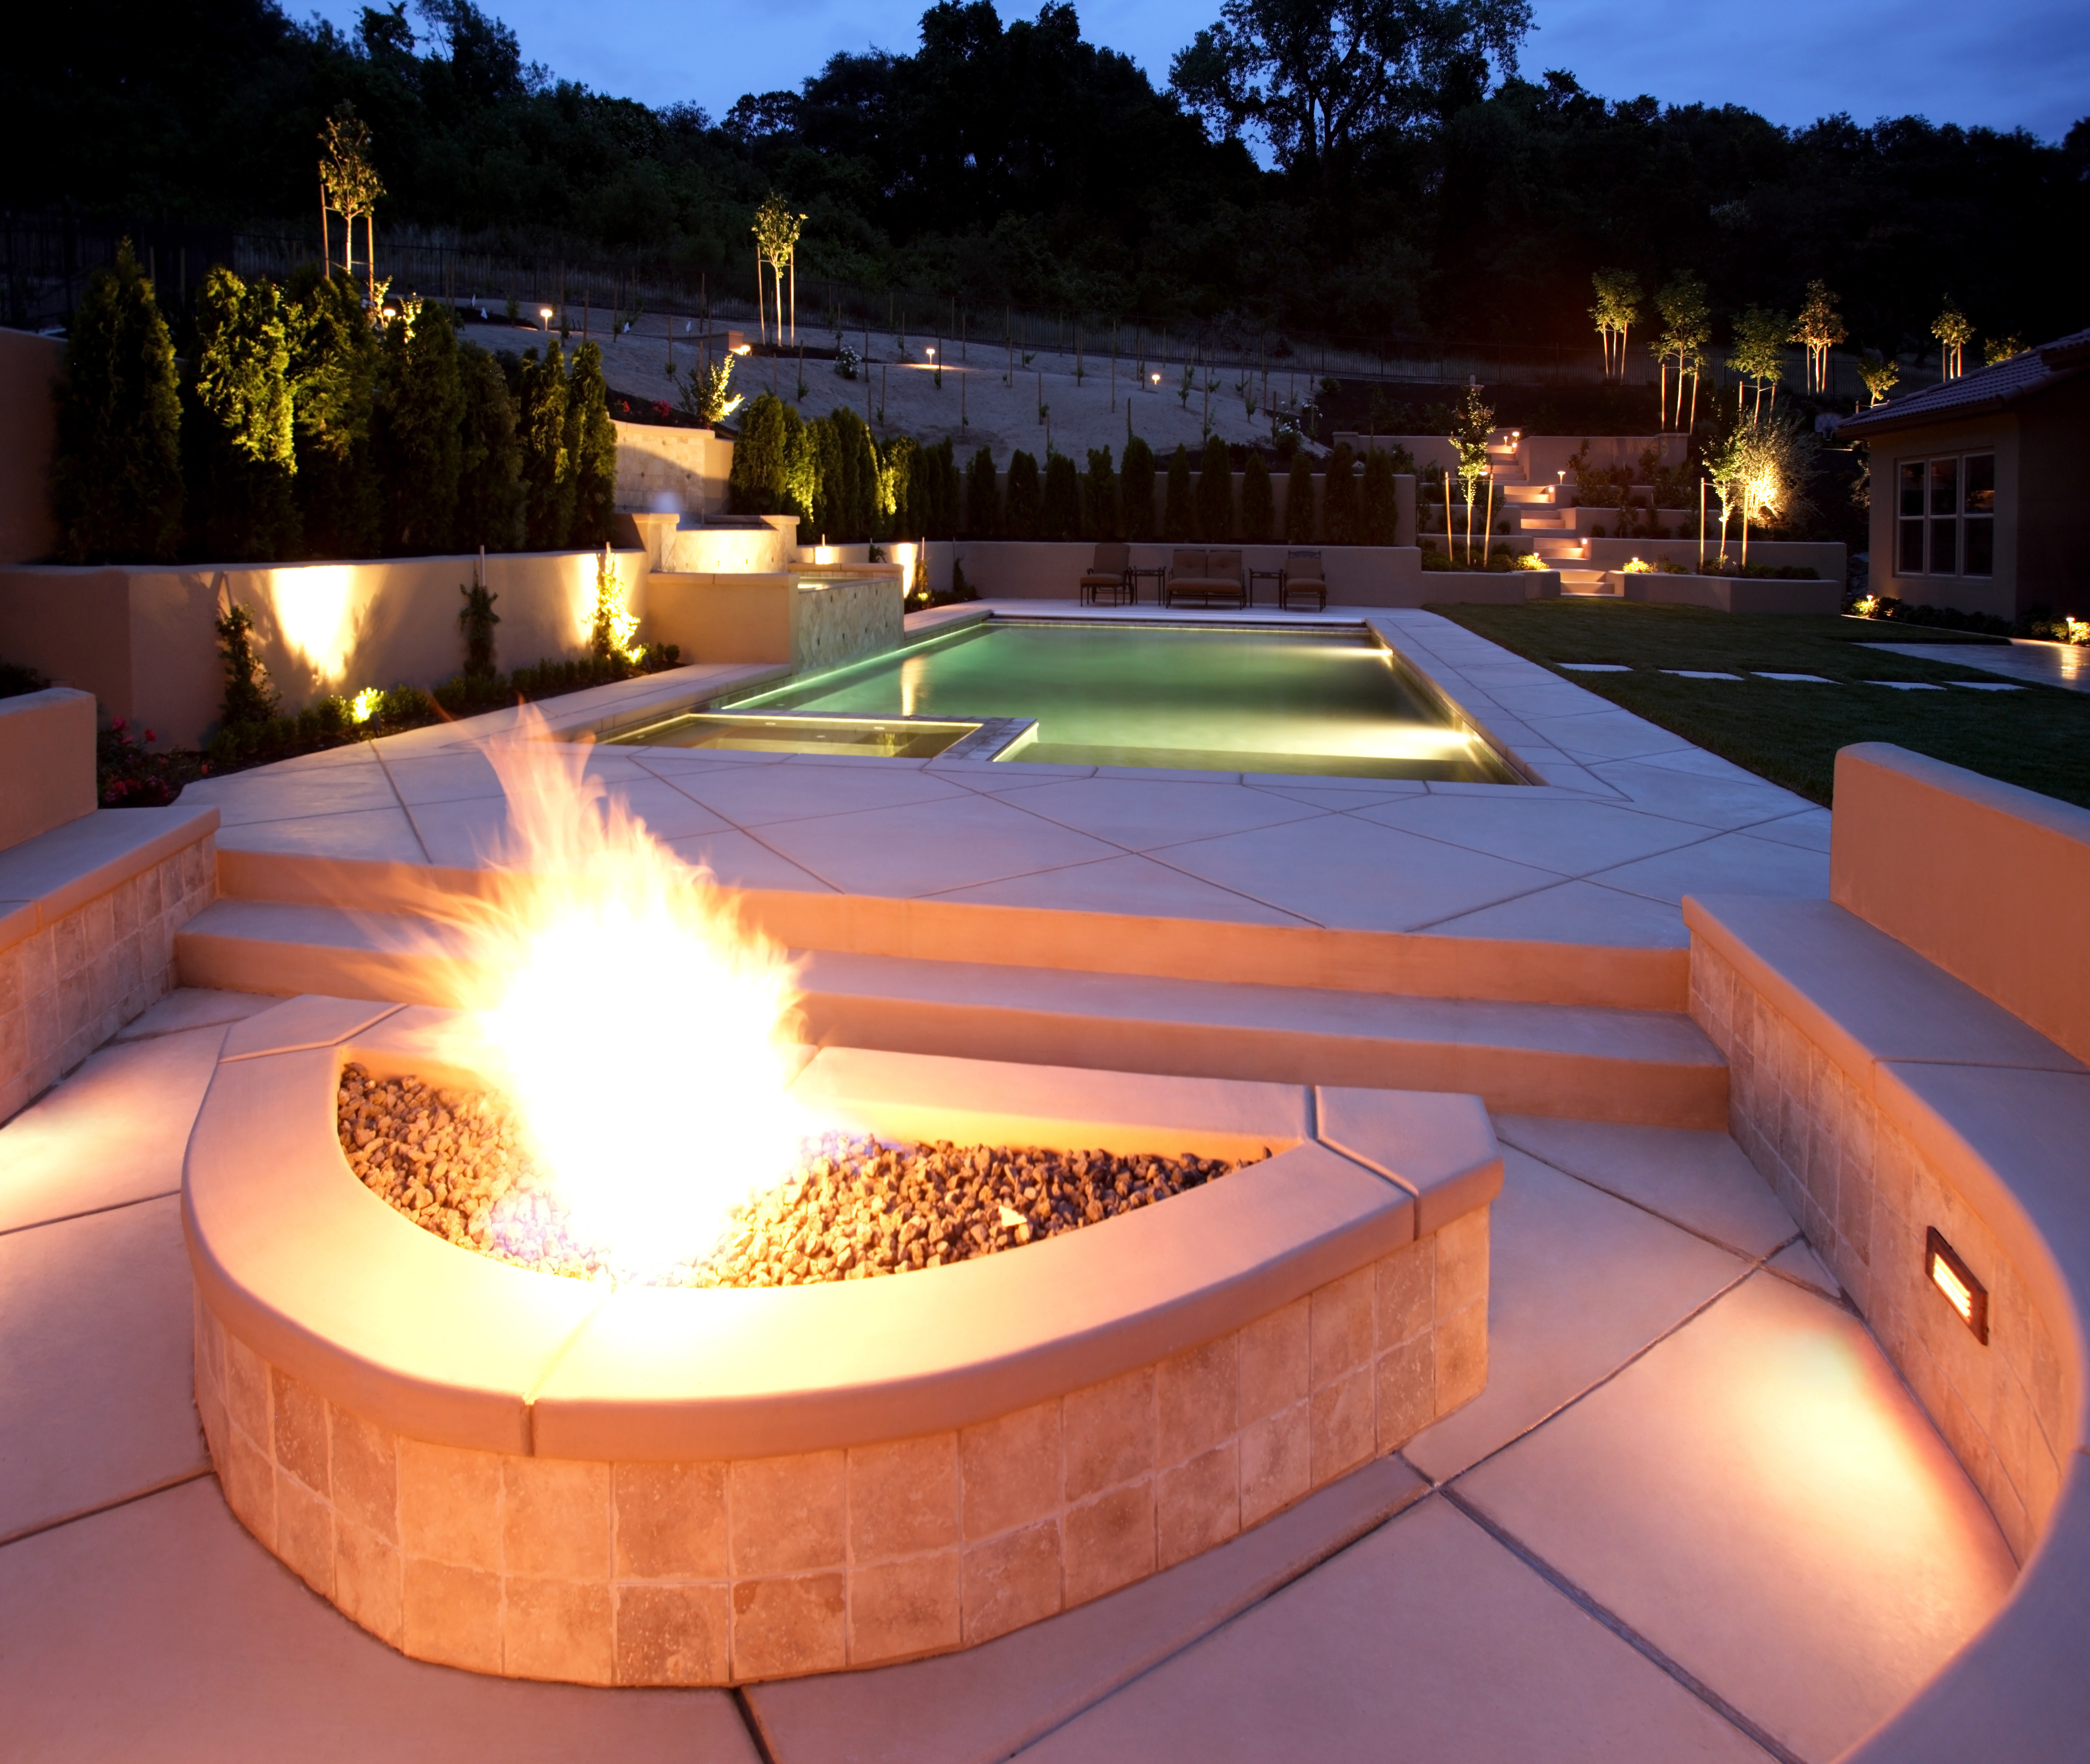 Combining pavers, bricks and tiles to create a poo and fire pit are with beauty and functional seating